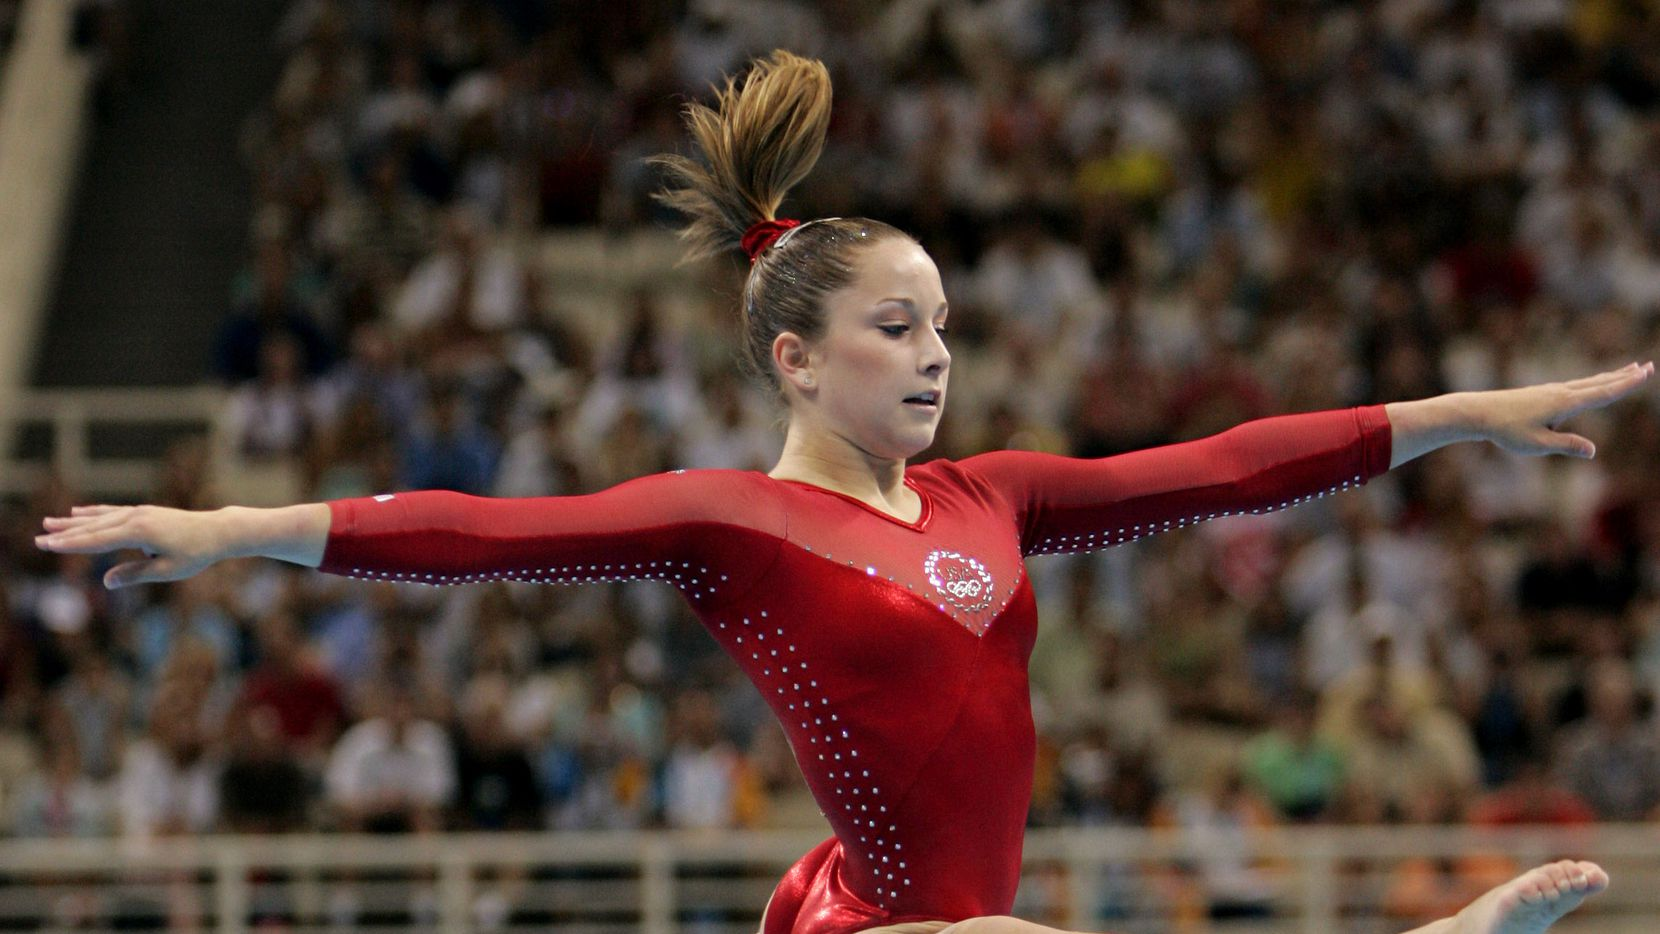 United States' Carly Patterson performs her floor routine during the women's gymnastics individual all-around final at the 2004 Olympic Games in Athens.